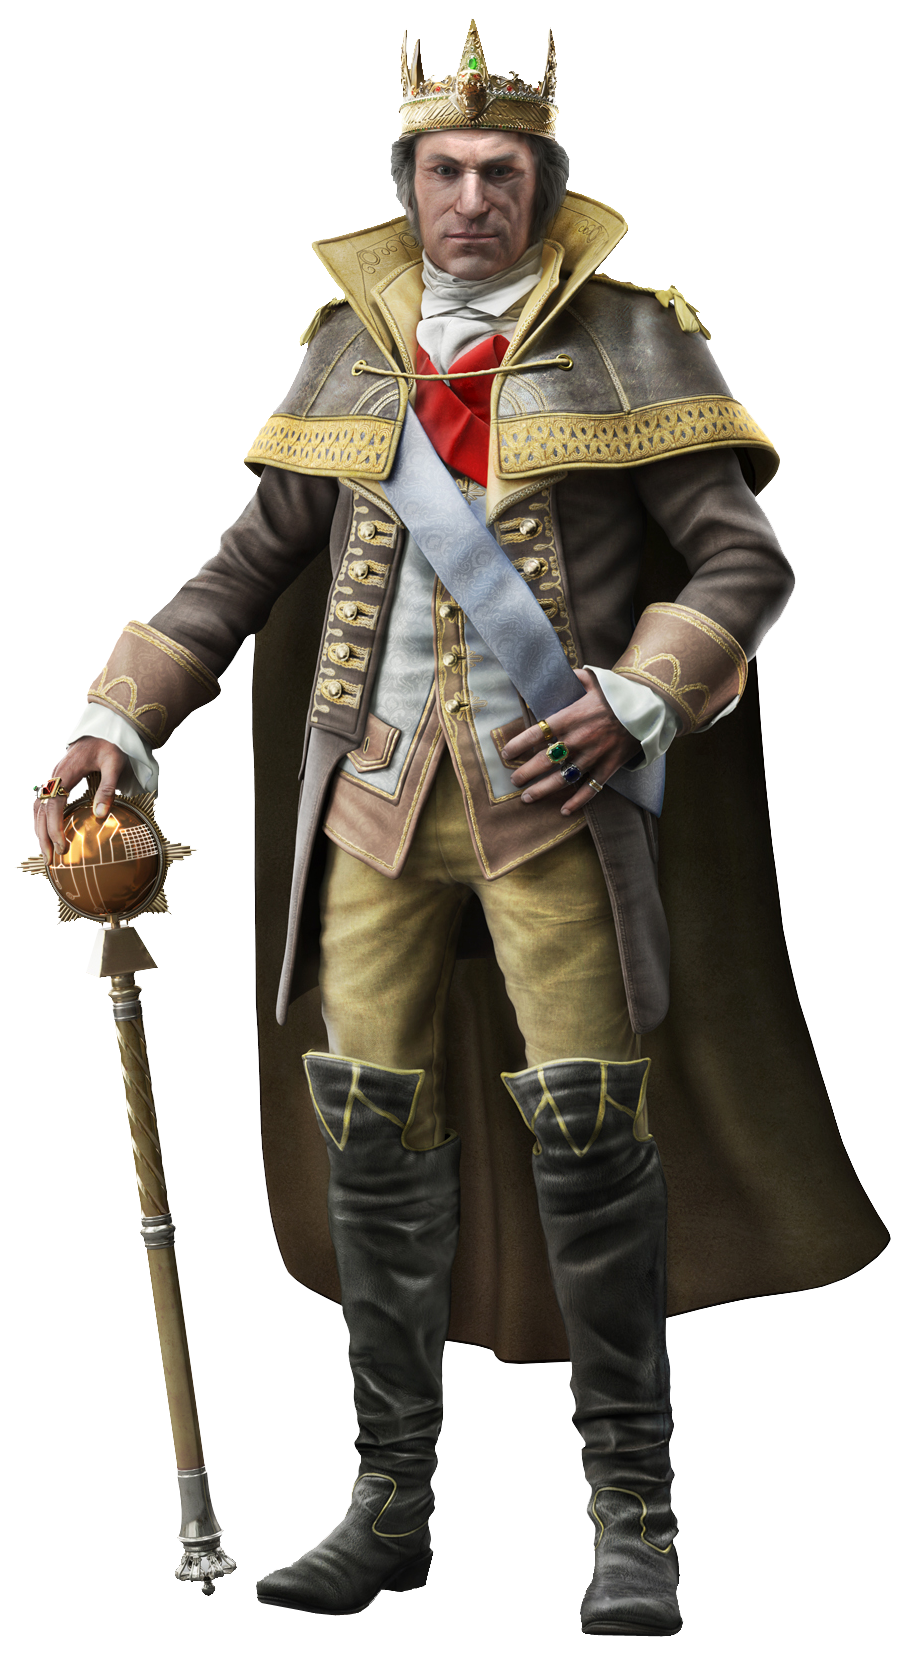 king georges tyranny The tyranny of king george's story starts at the close of the american revolutionary war and tells an alternate history tale where george washington decides to.